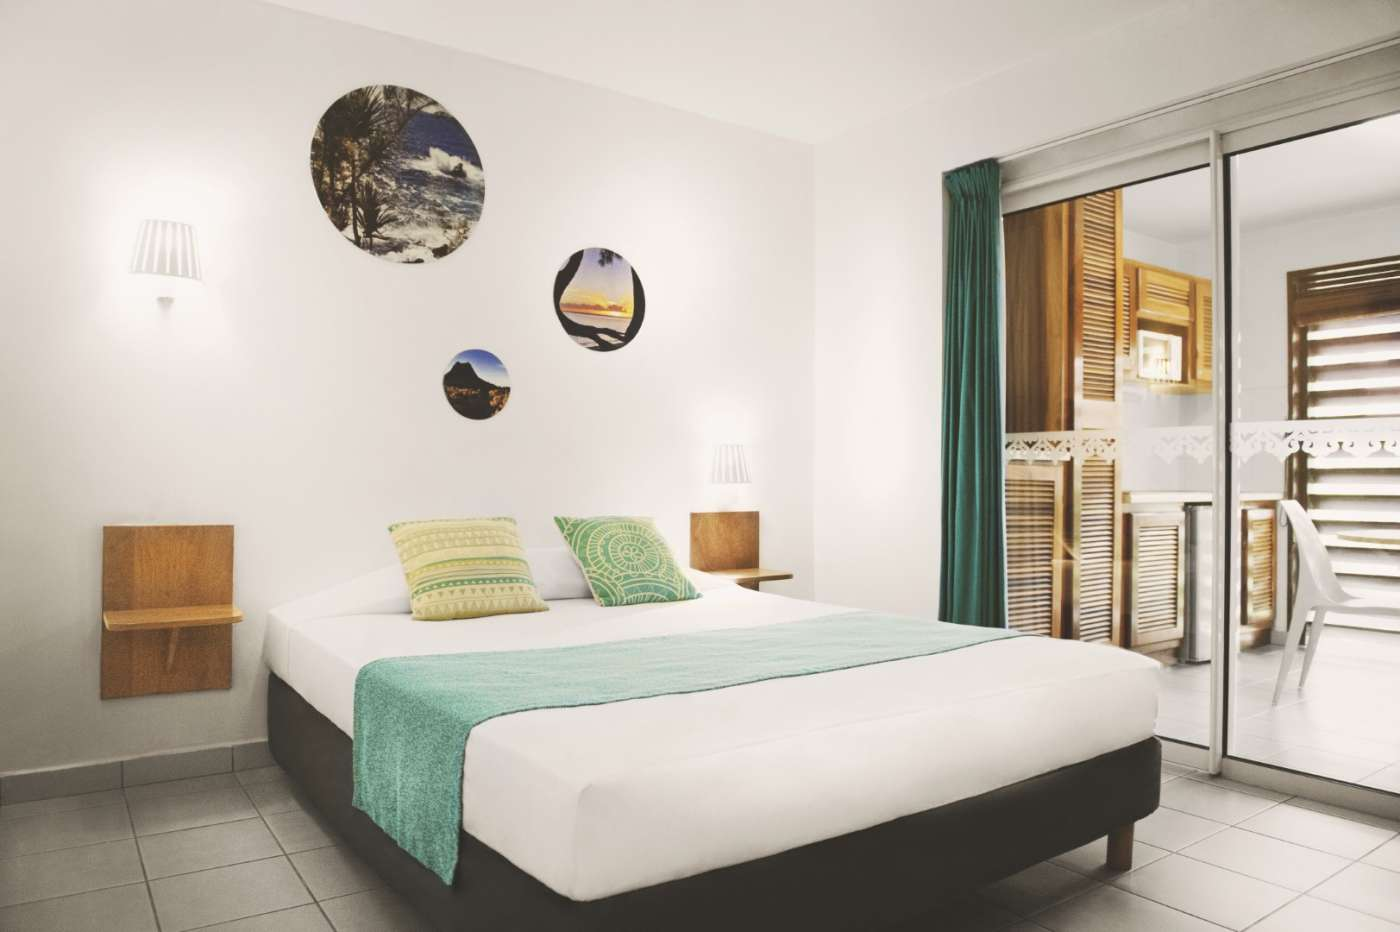 RESIDENCE TROPIC APPART'HOTEL *** Station balnéaire L'Hermitage 974